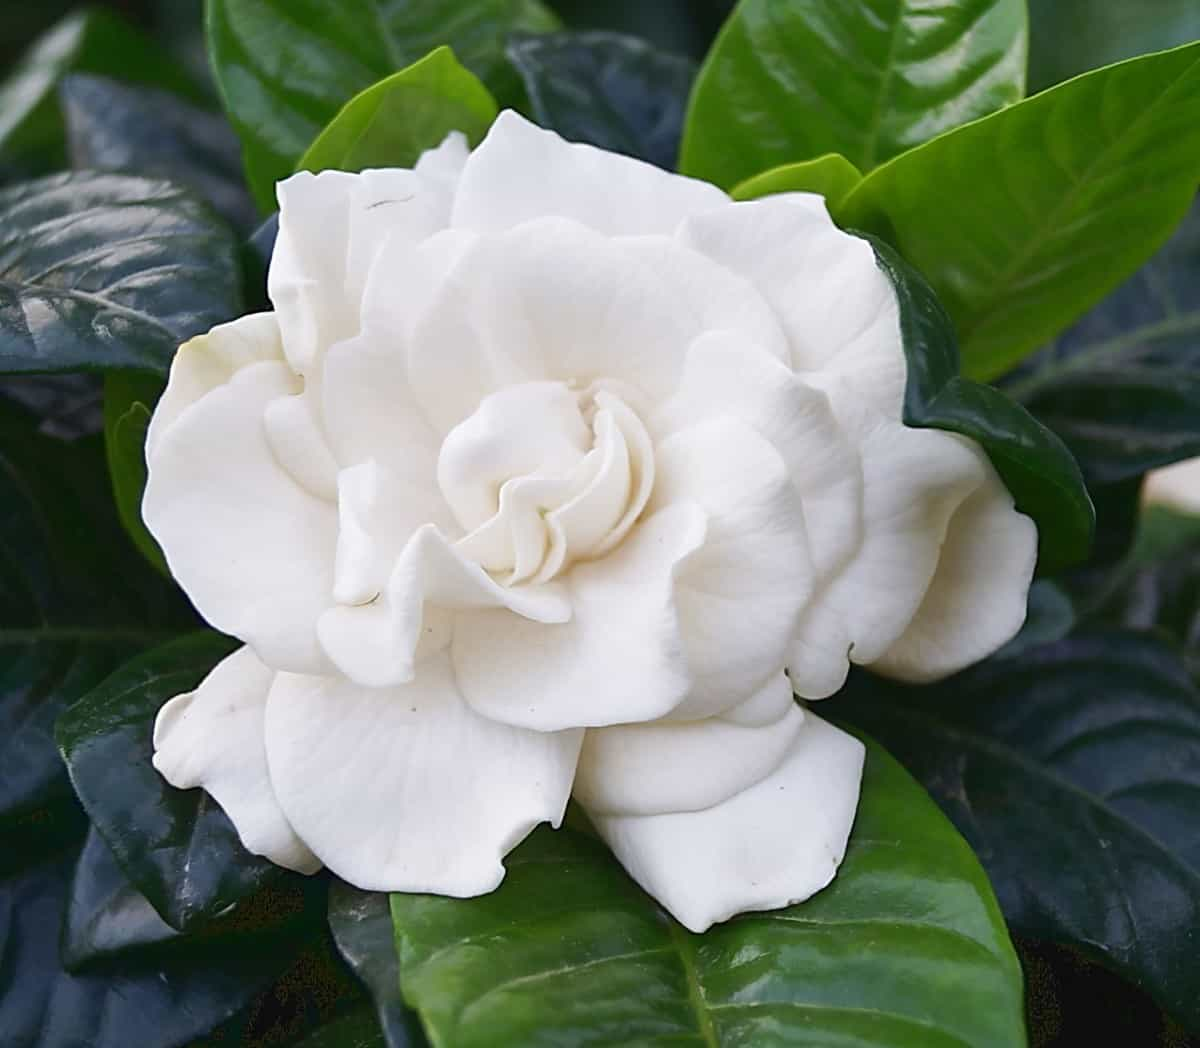 gardenias have a sweet scent that can sometimes be overwhelming to sensitive individuals